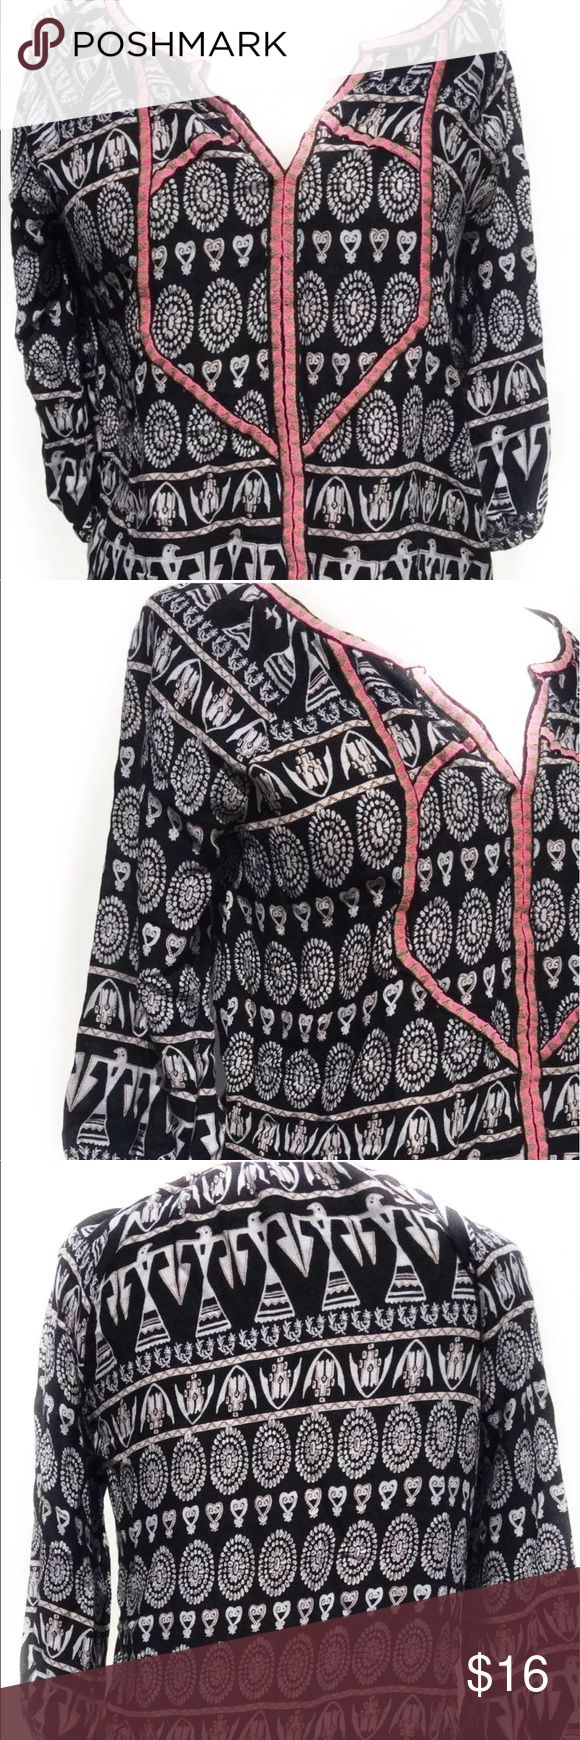 Forever 21 Boho Peasant Tribal Hippie Aztec Tunic Forever 21 Boho Hippie Fashion Top Black Size Small Peasant Women Blouse TribalEvening BeachClothing Female Party DateChic Fashion Bohemian Pre Owned Causal Online Shopping  Measurements: 23 inches ( From Top of the Strap to Bottom) 19 inches (Arm pit to arm pit) Forever 21 Tops Tunics